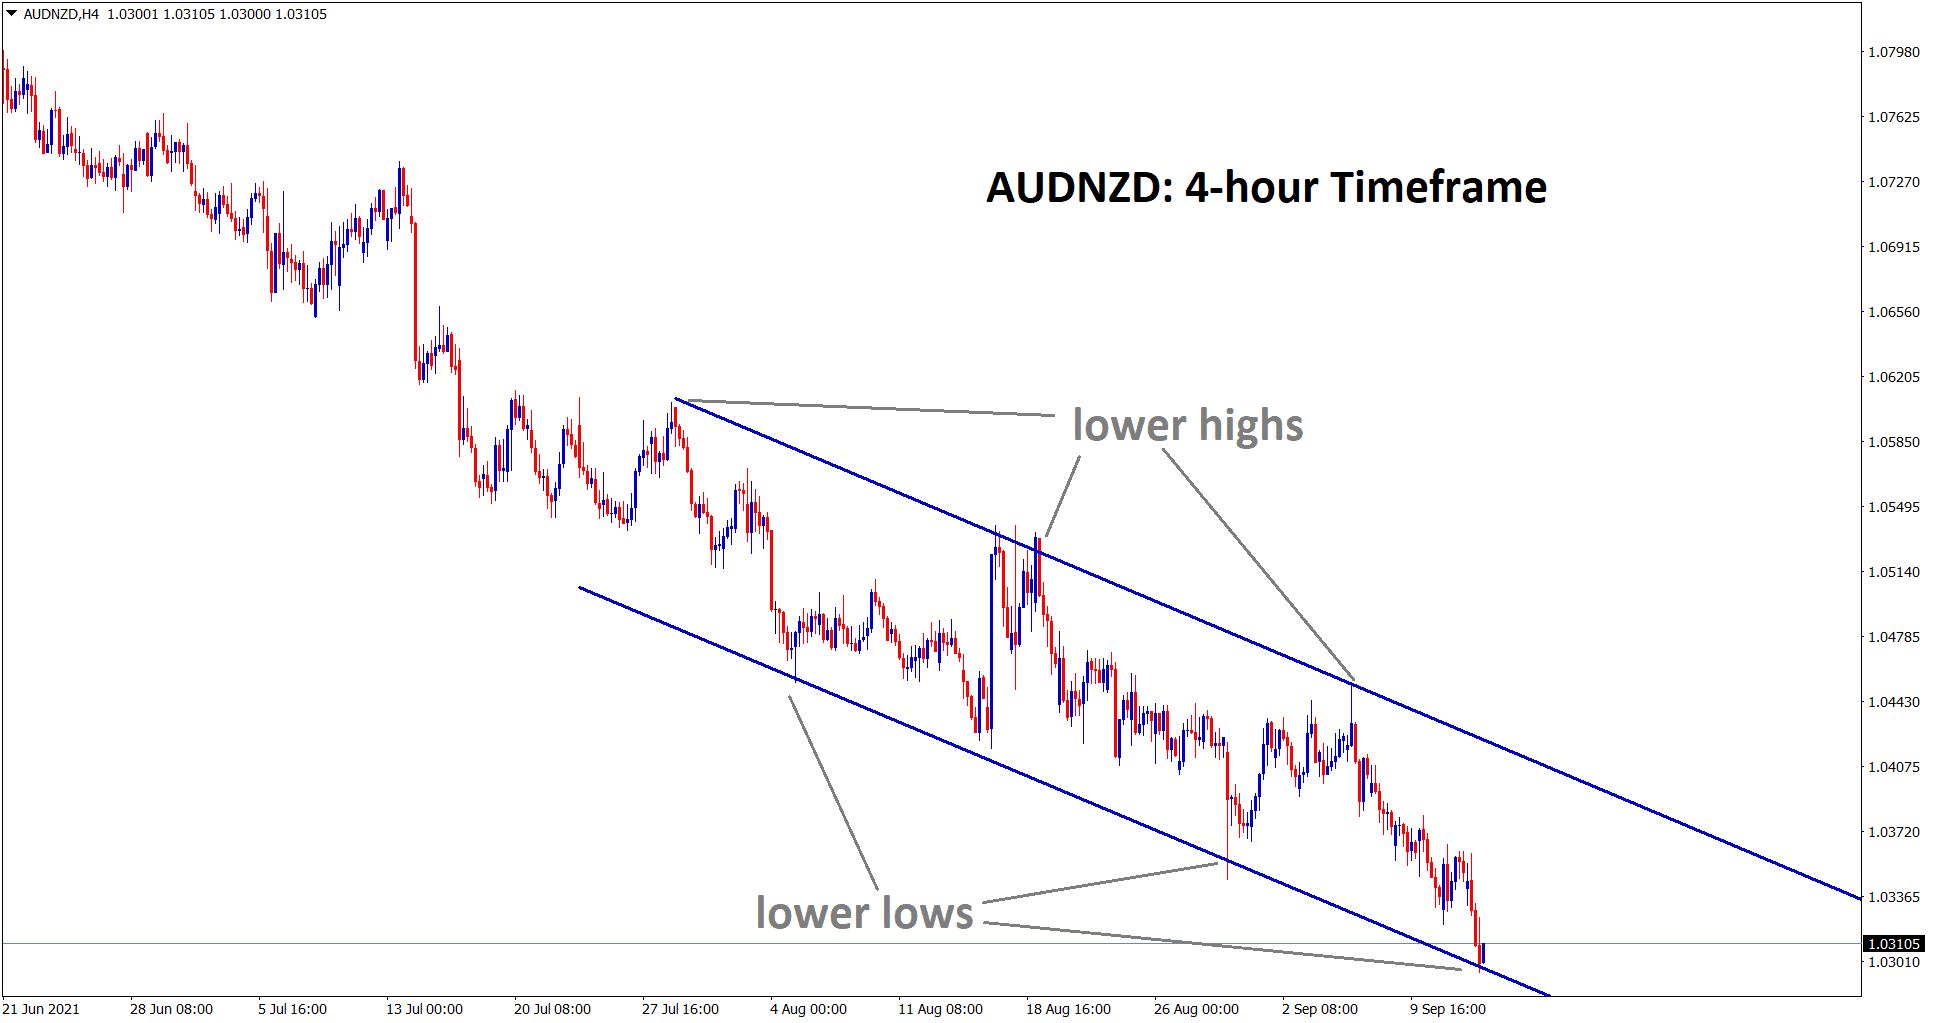 In the 4 hour timeframe AUDNZD is bouncing back from the lower low of the descending channel